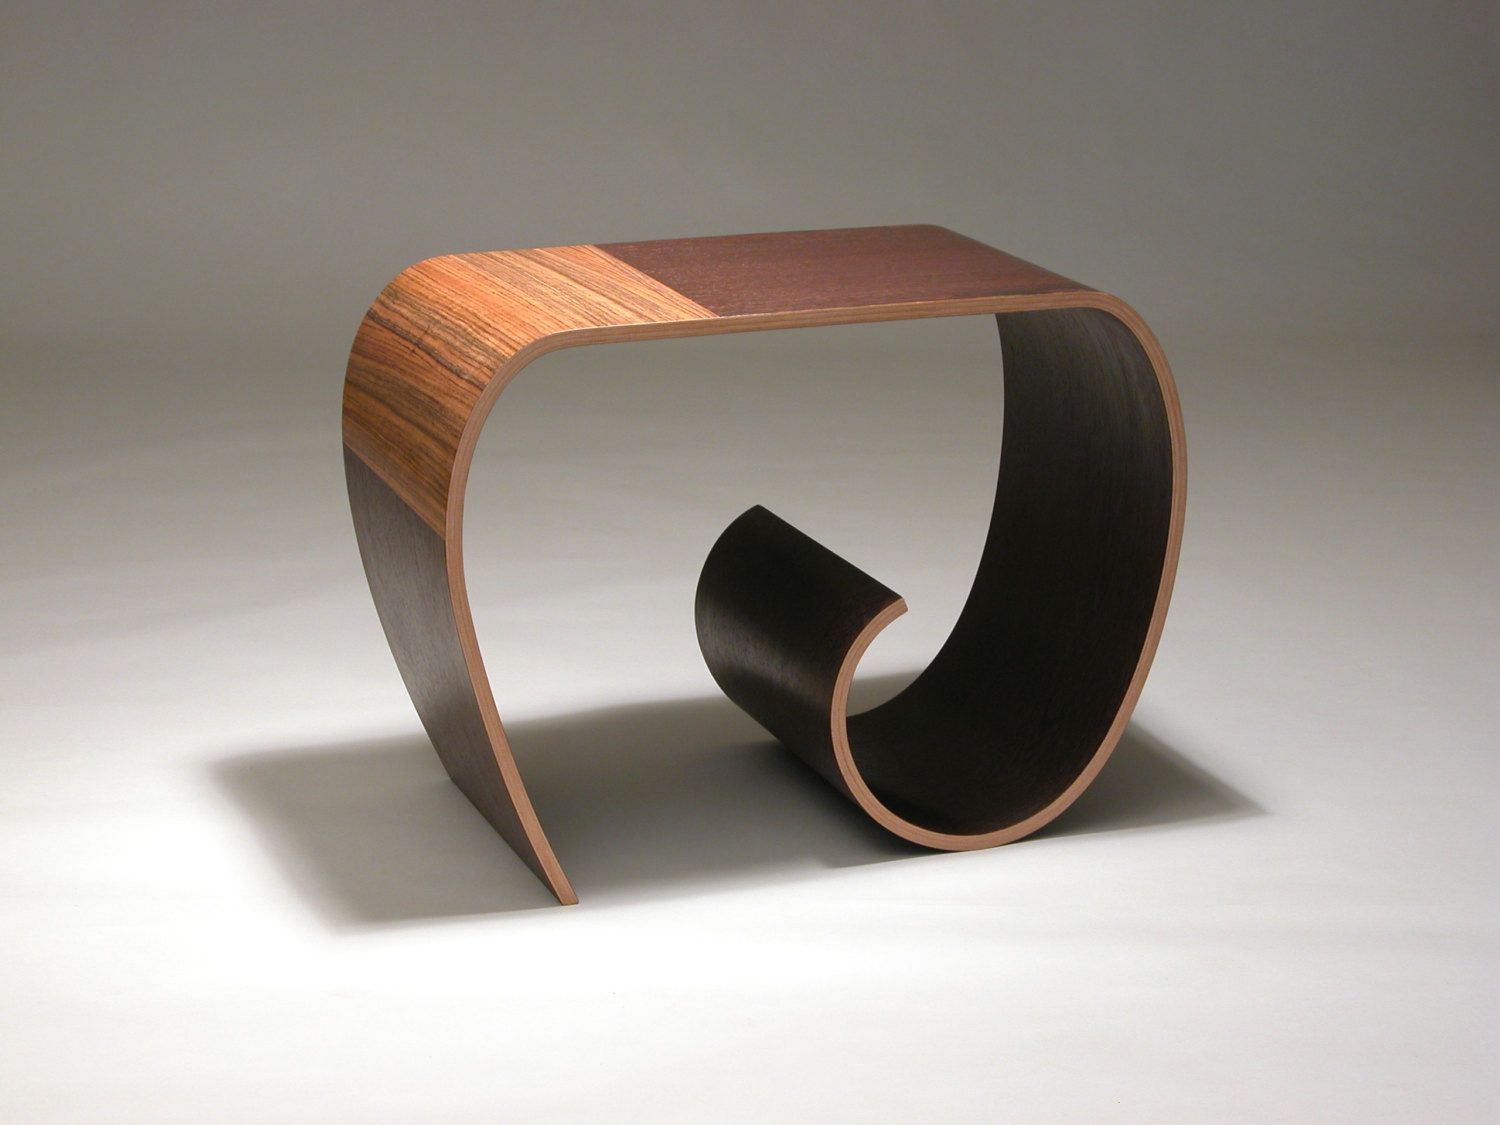 sculptural-furniture-collection-that-ties-the-knot-2